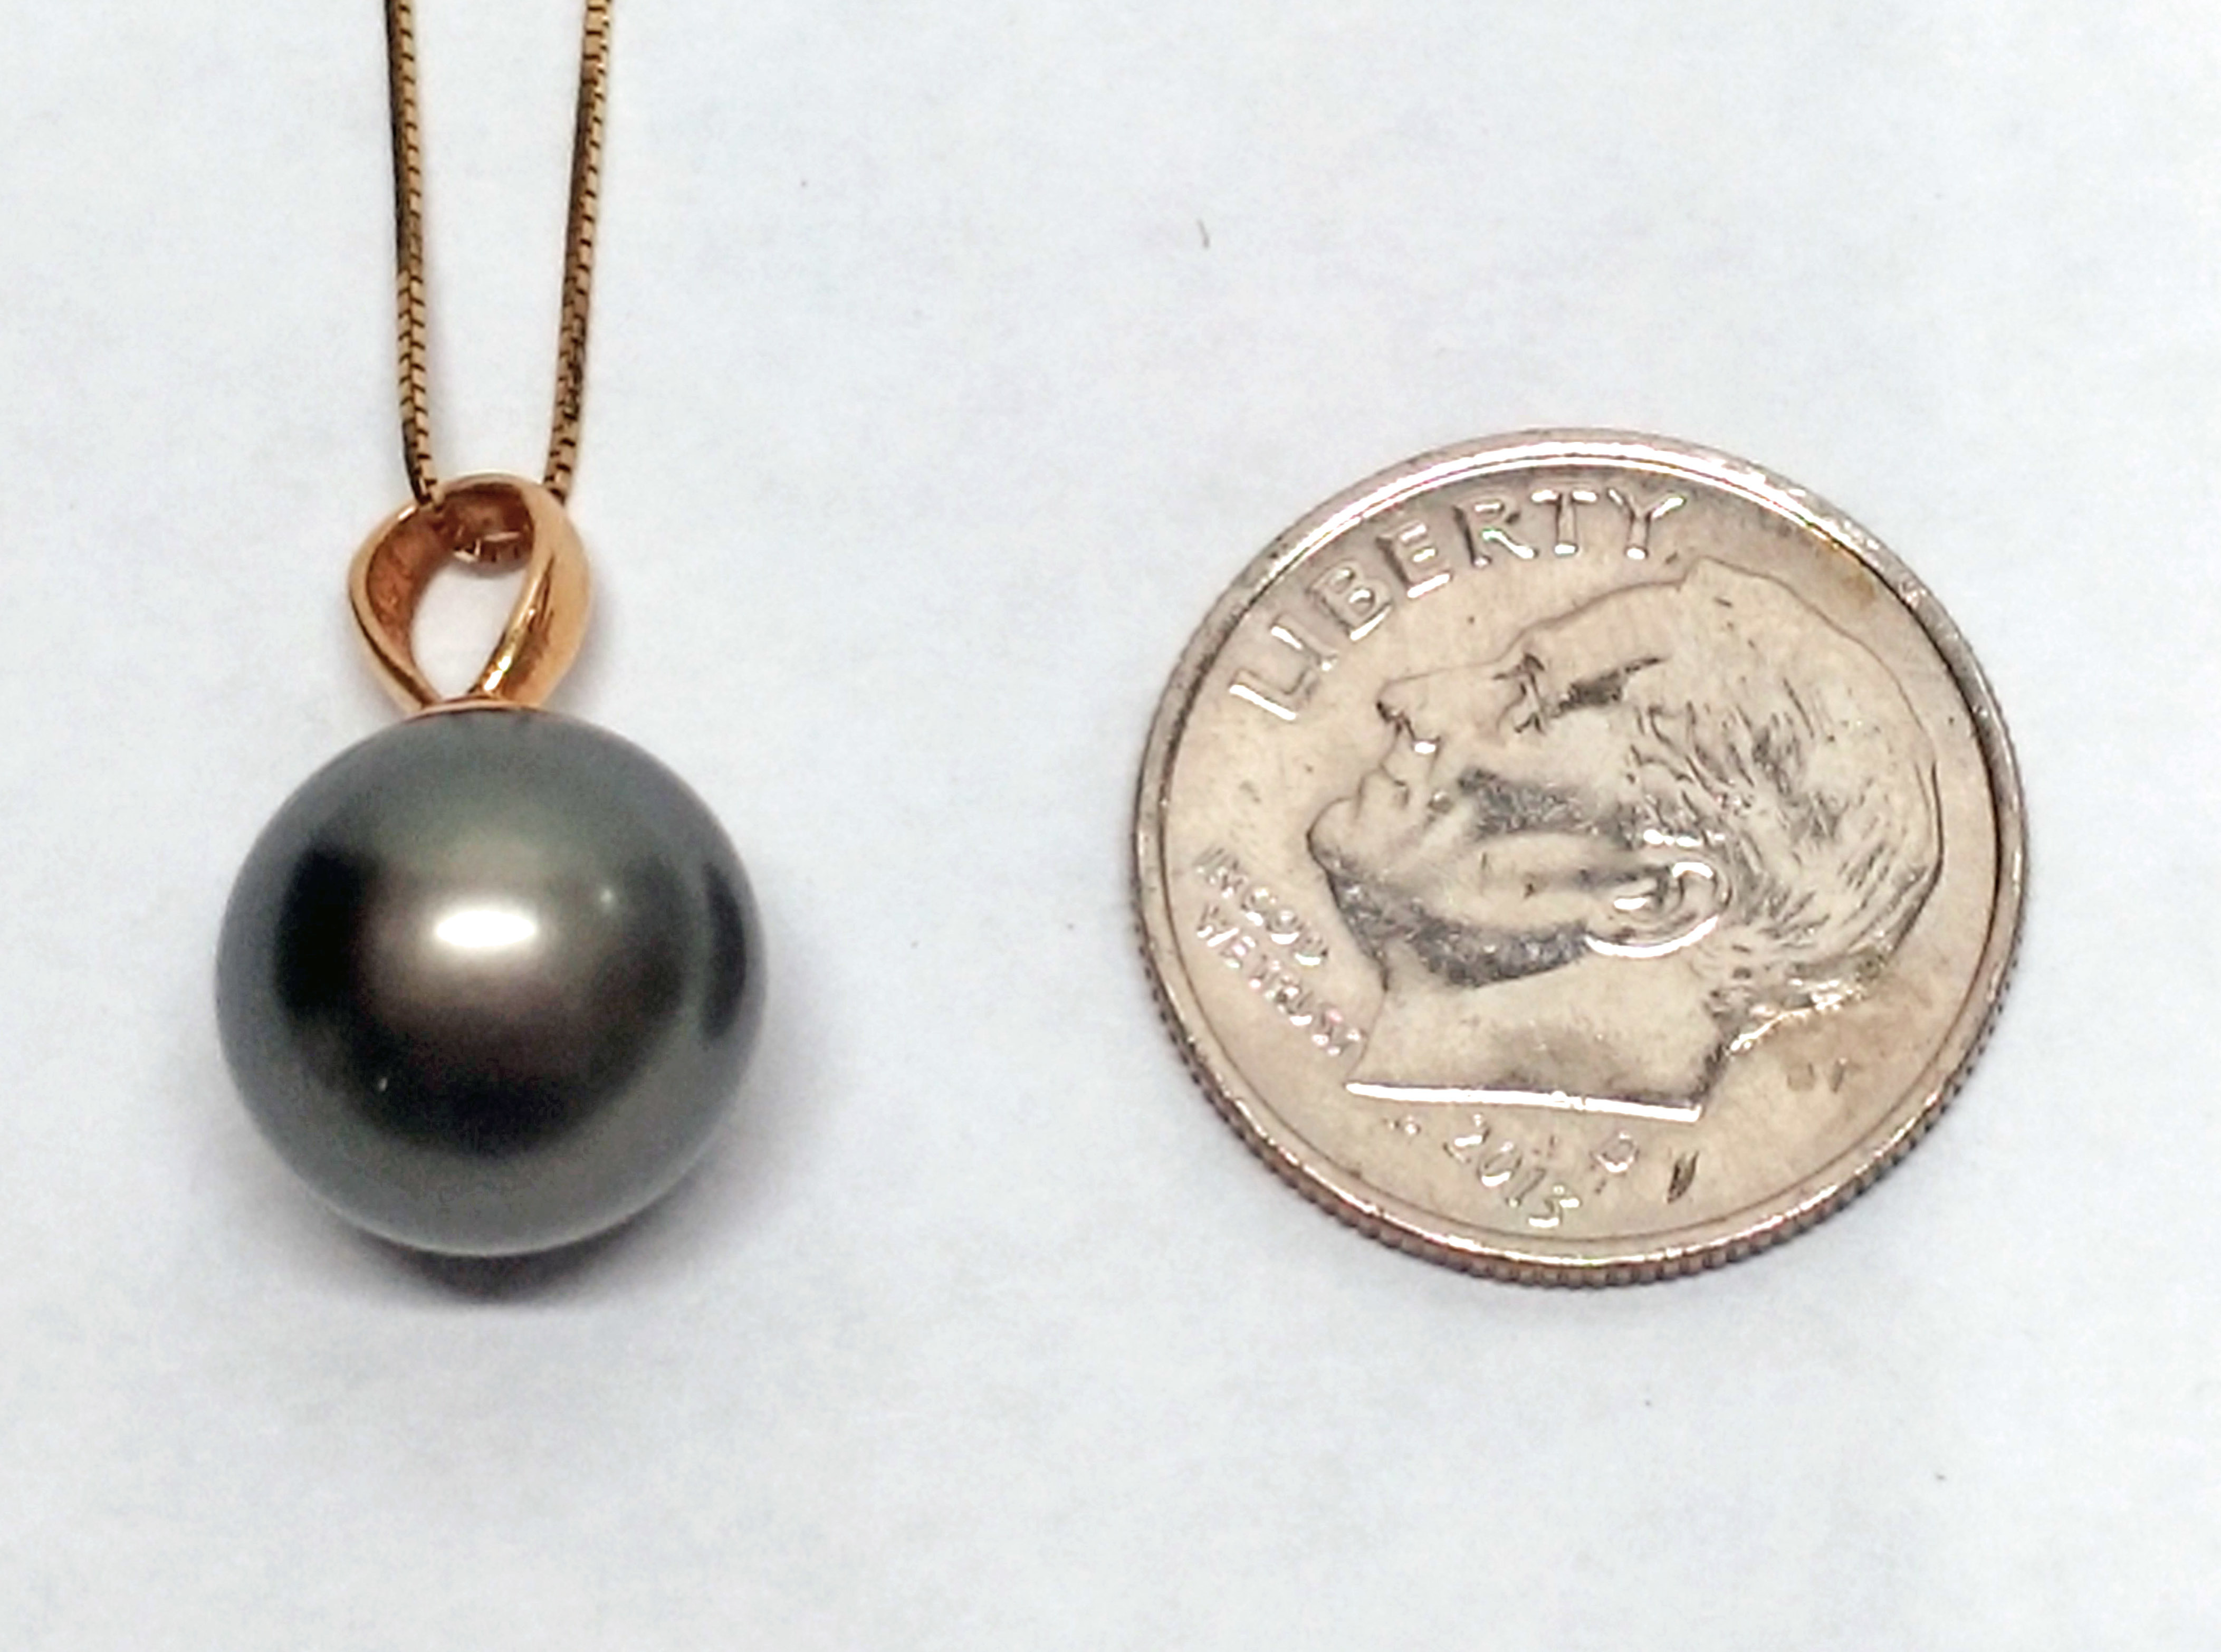 10.5mm Black Pearl Pendant with 14kt Yellow Gold Bail and 17